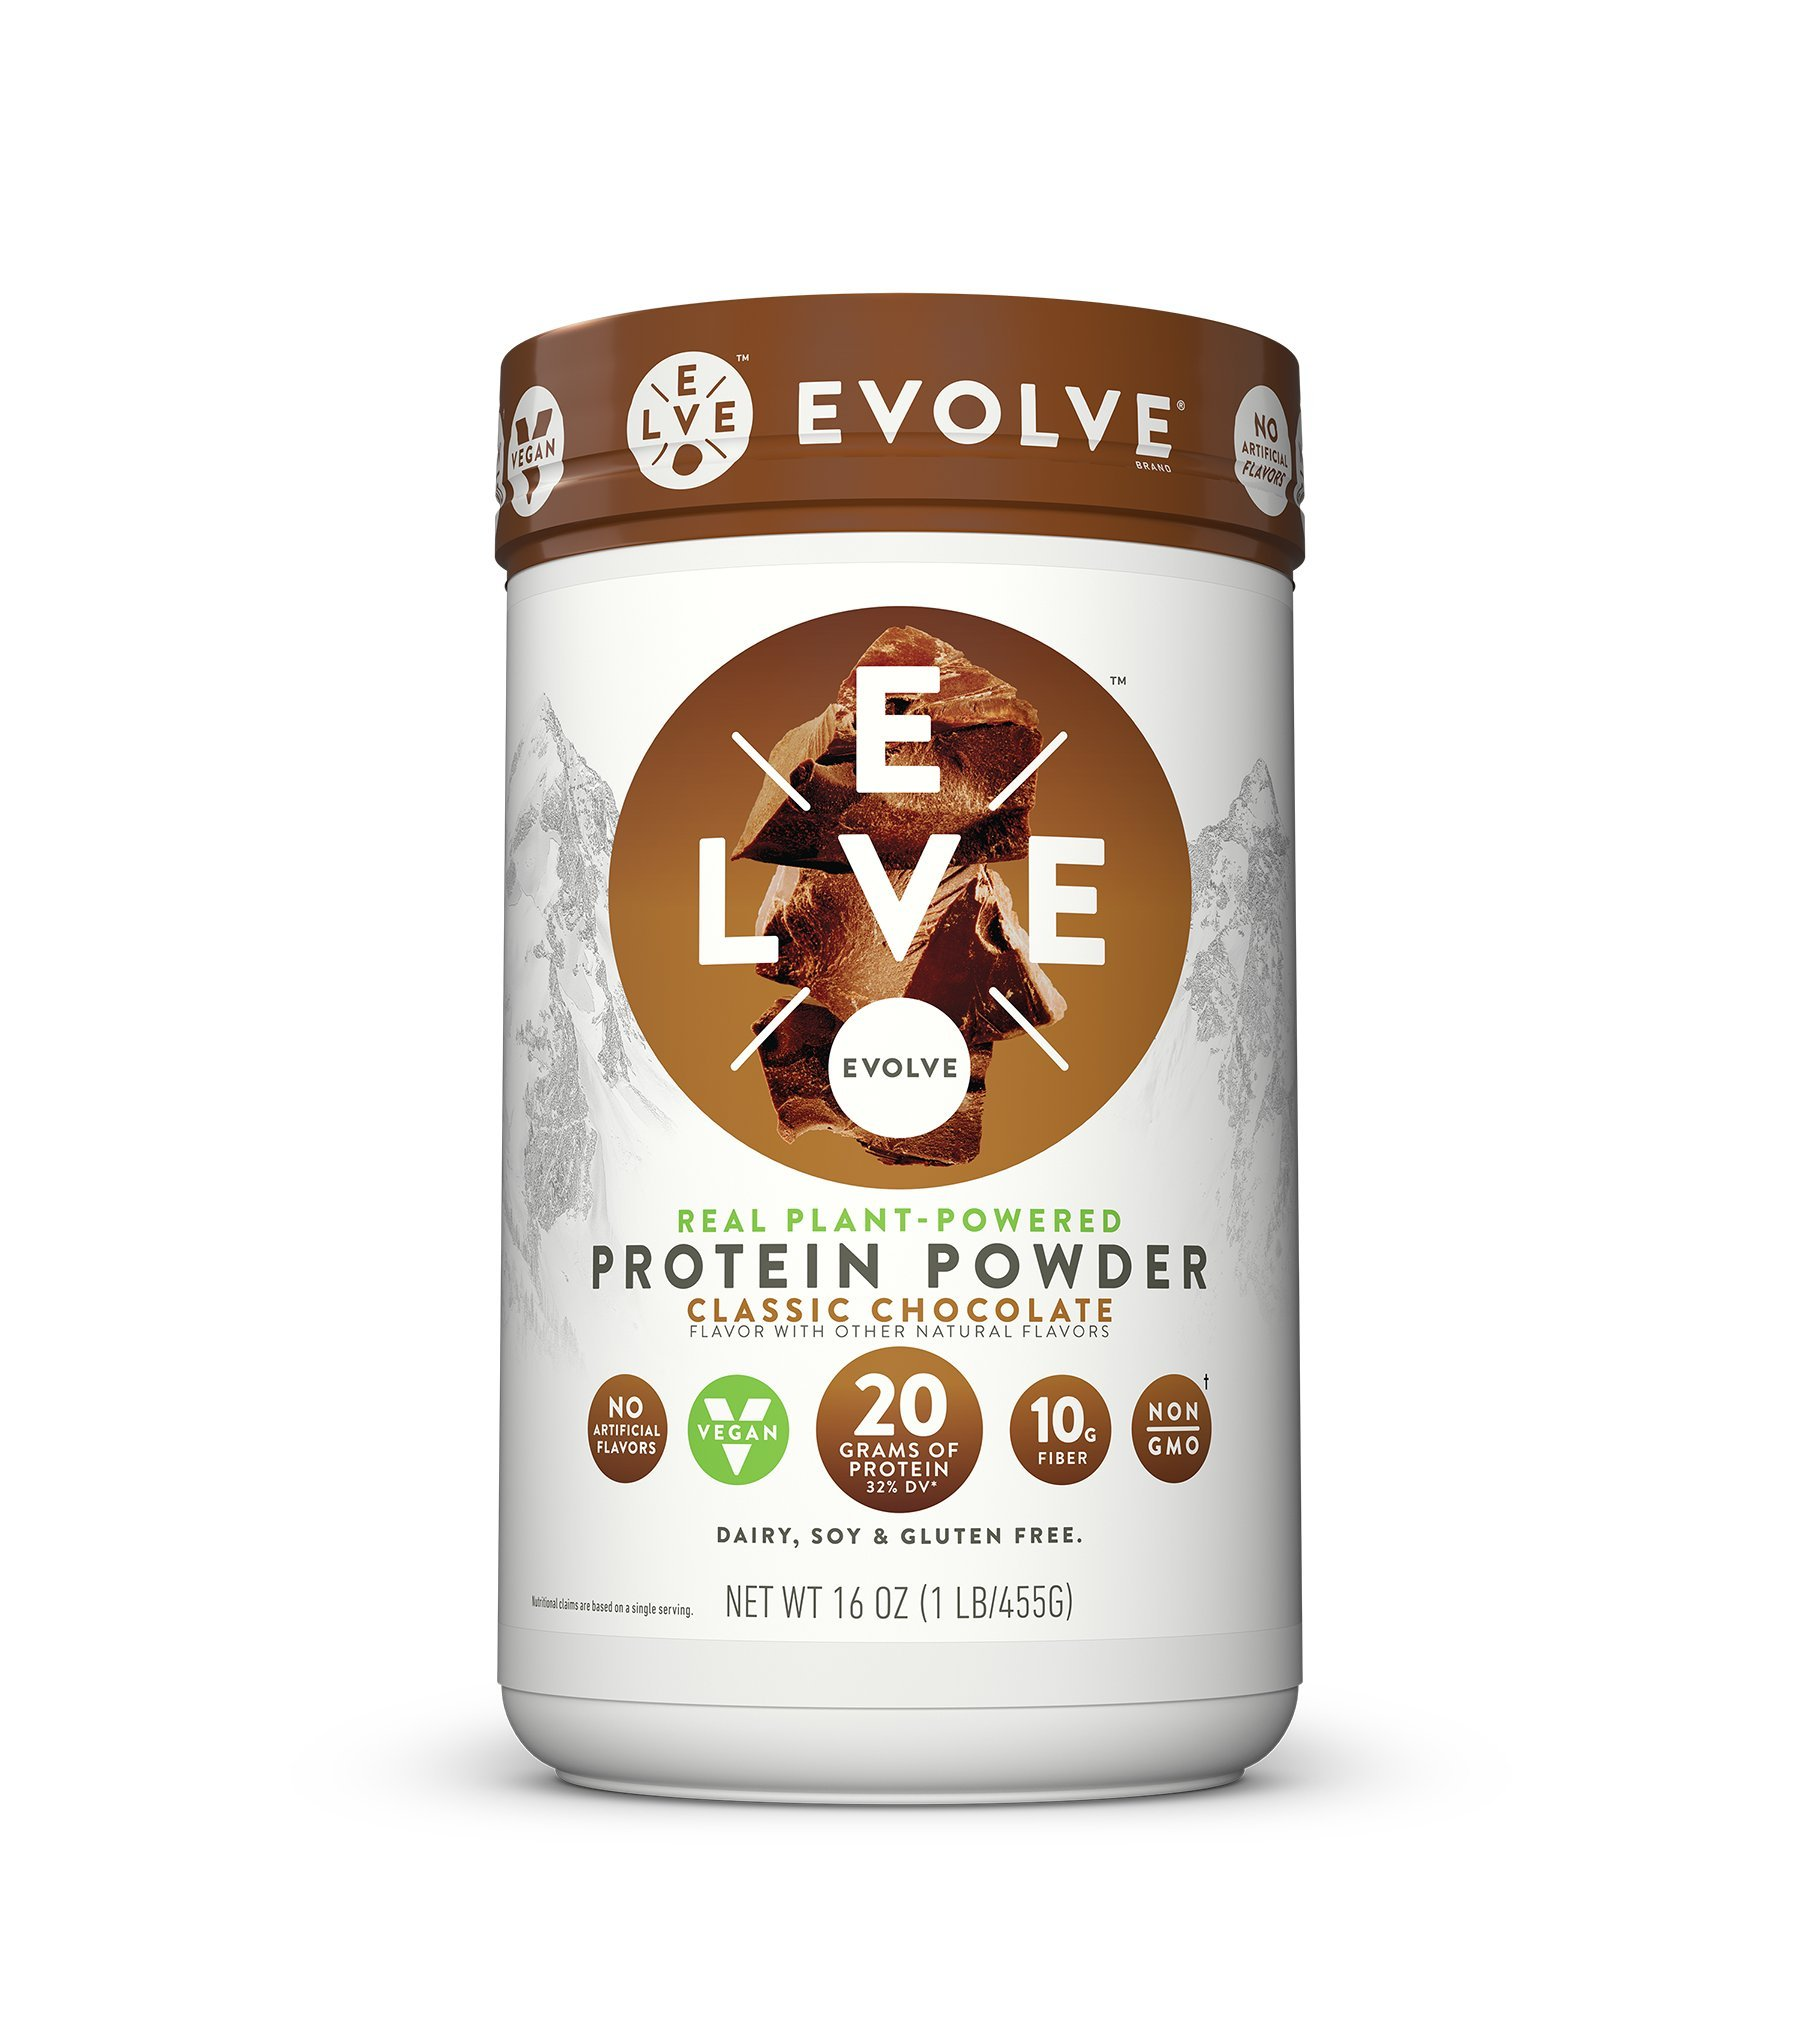 Evolve Protein Powder, Classic Chocolate, 20g Protein, 1 Lb by EVOLVE